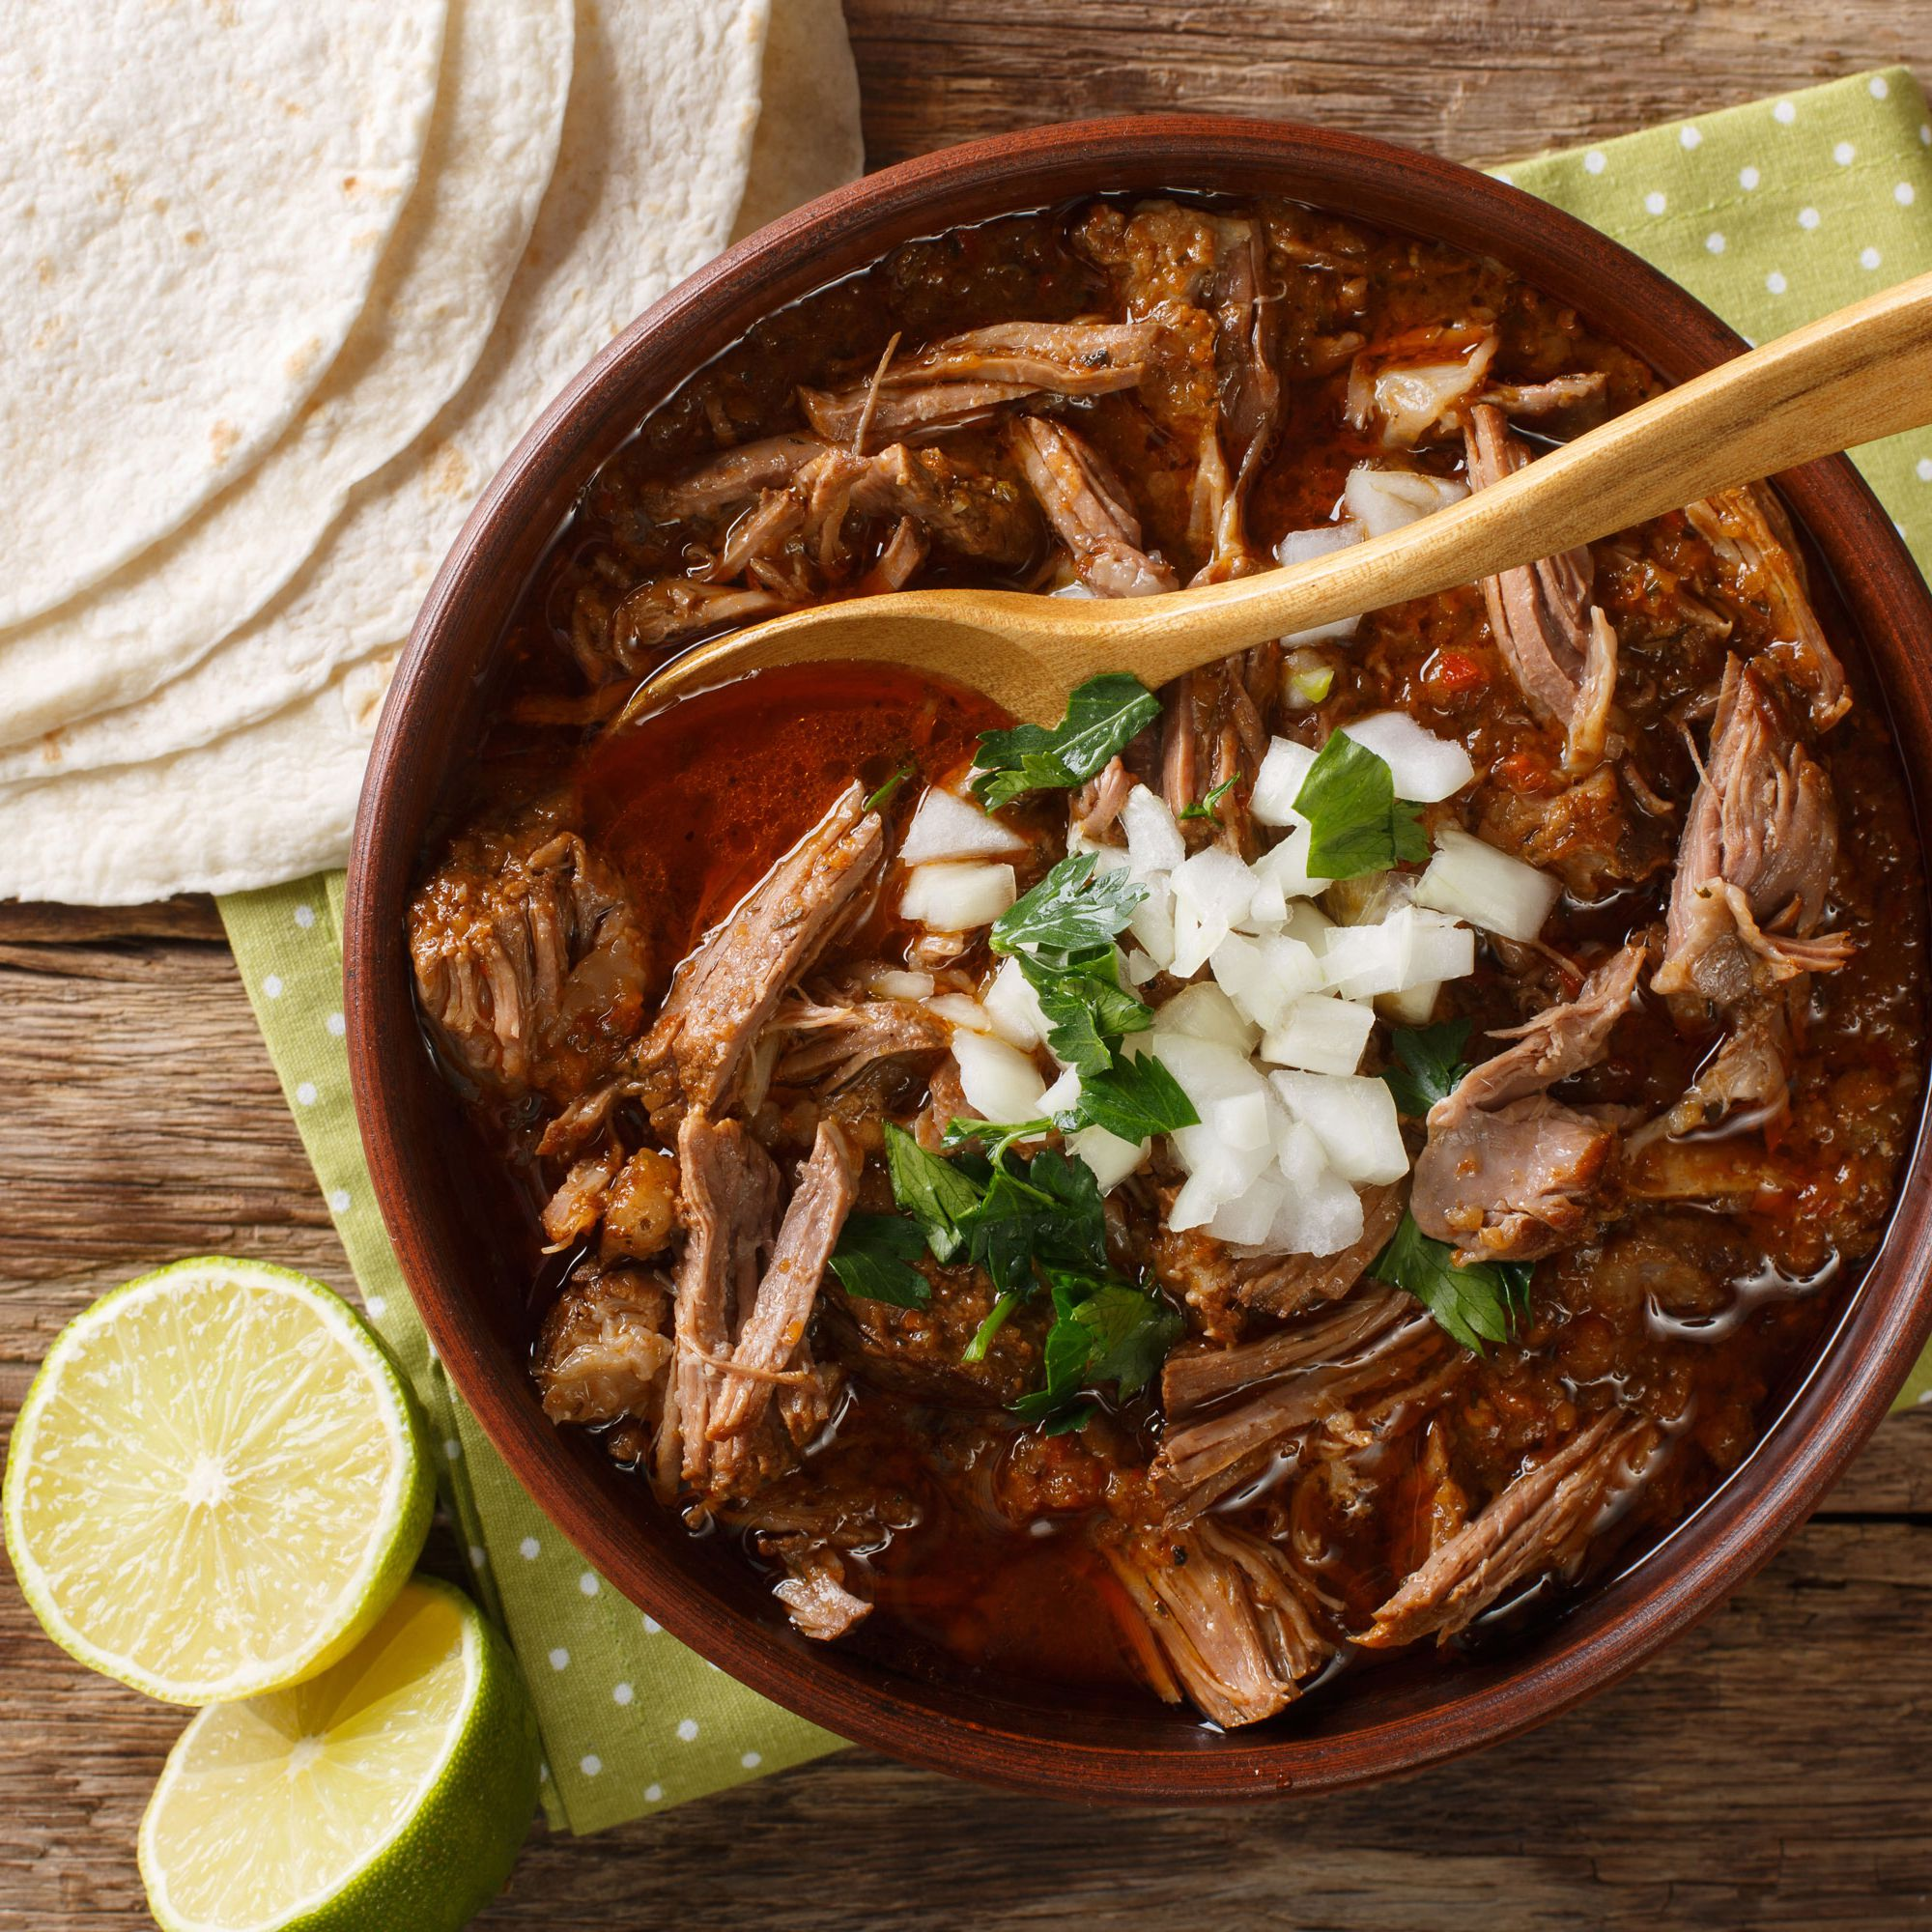 Slow Cooked Birria Authentic Mexican Beef Stew